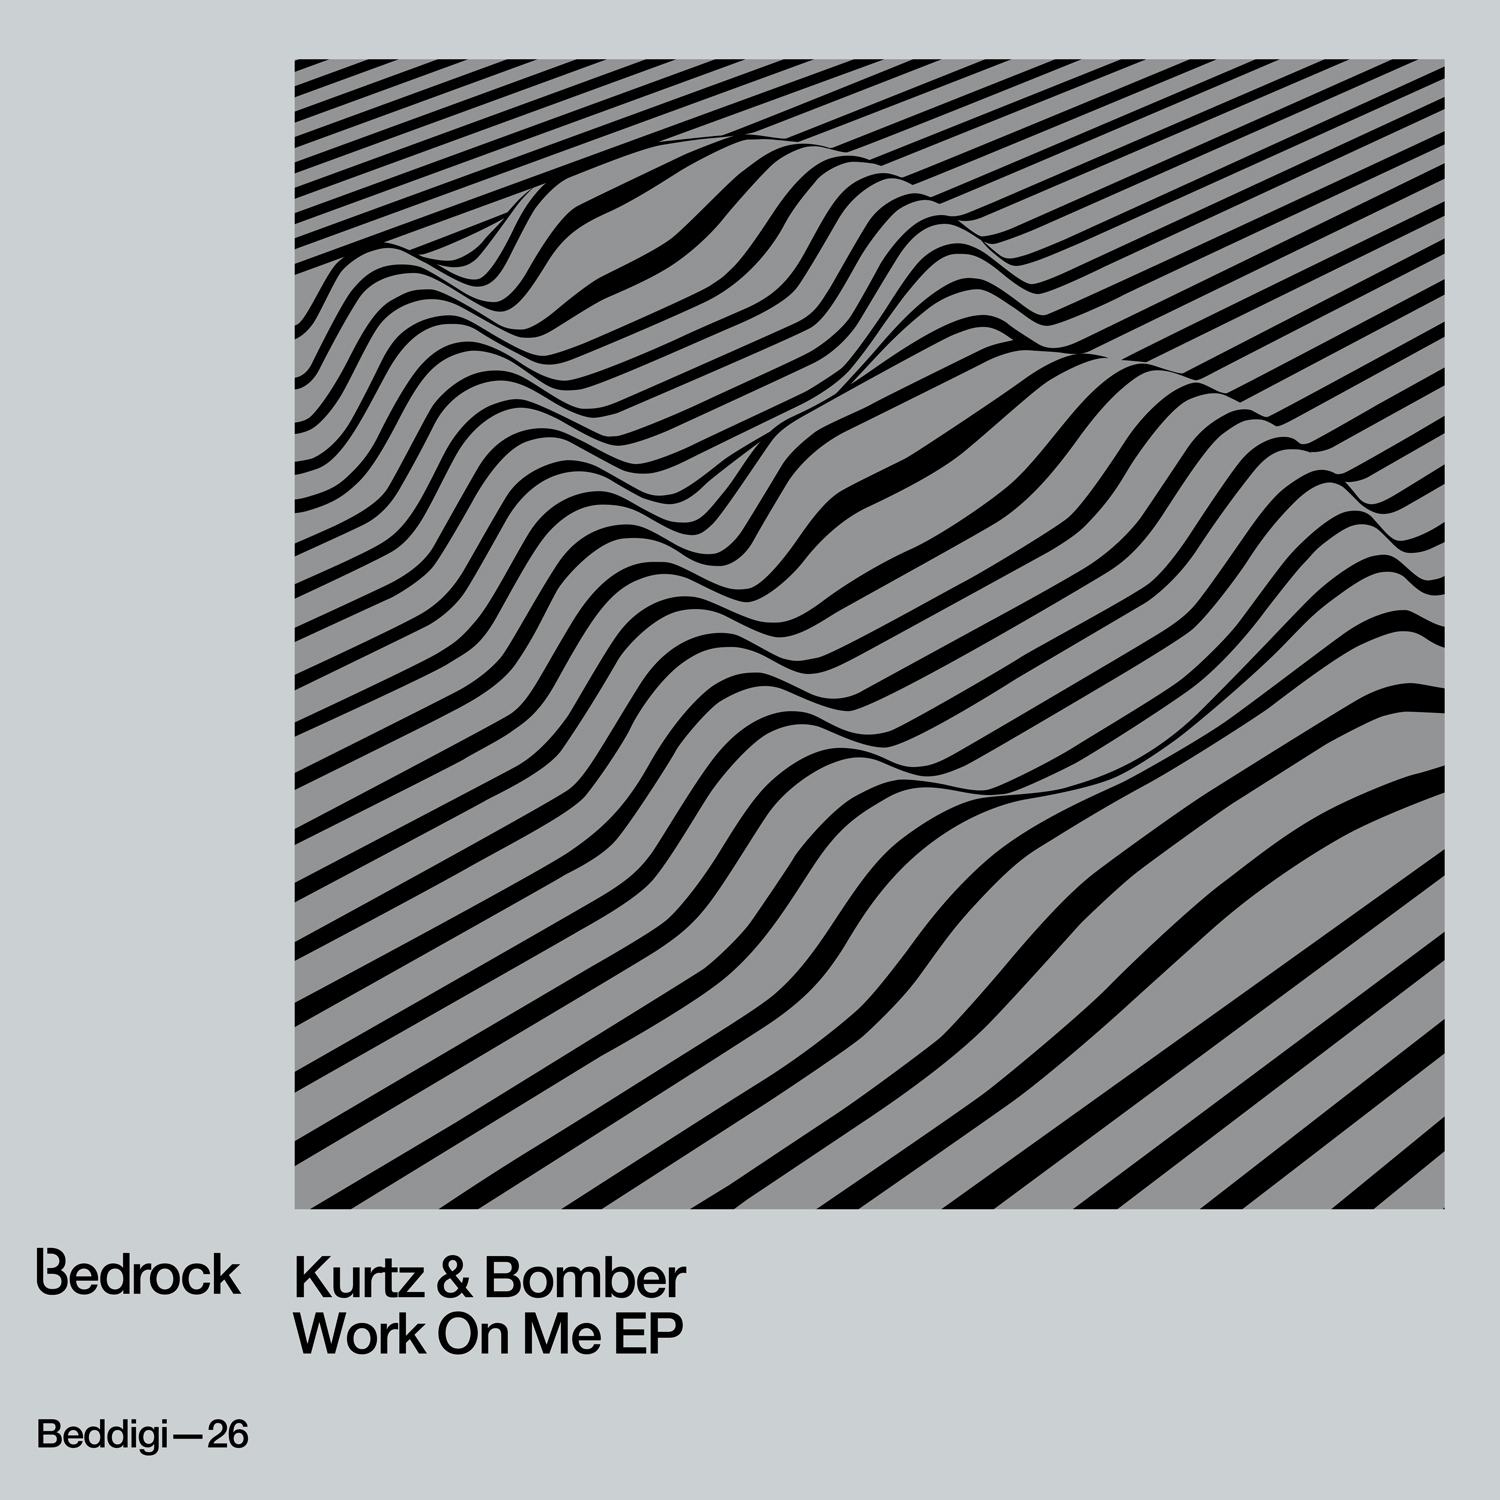 Kurtz & Bomber - Work On Me EP